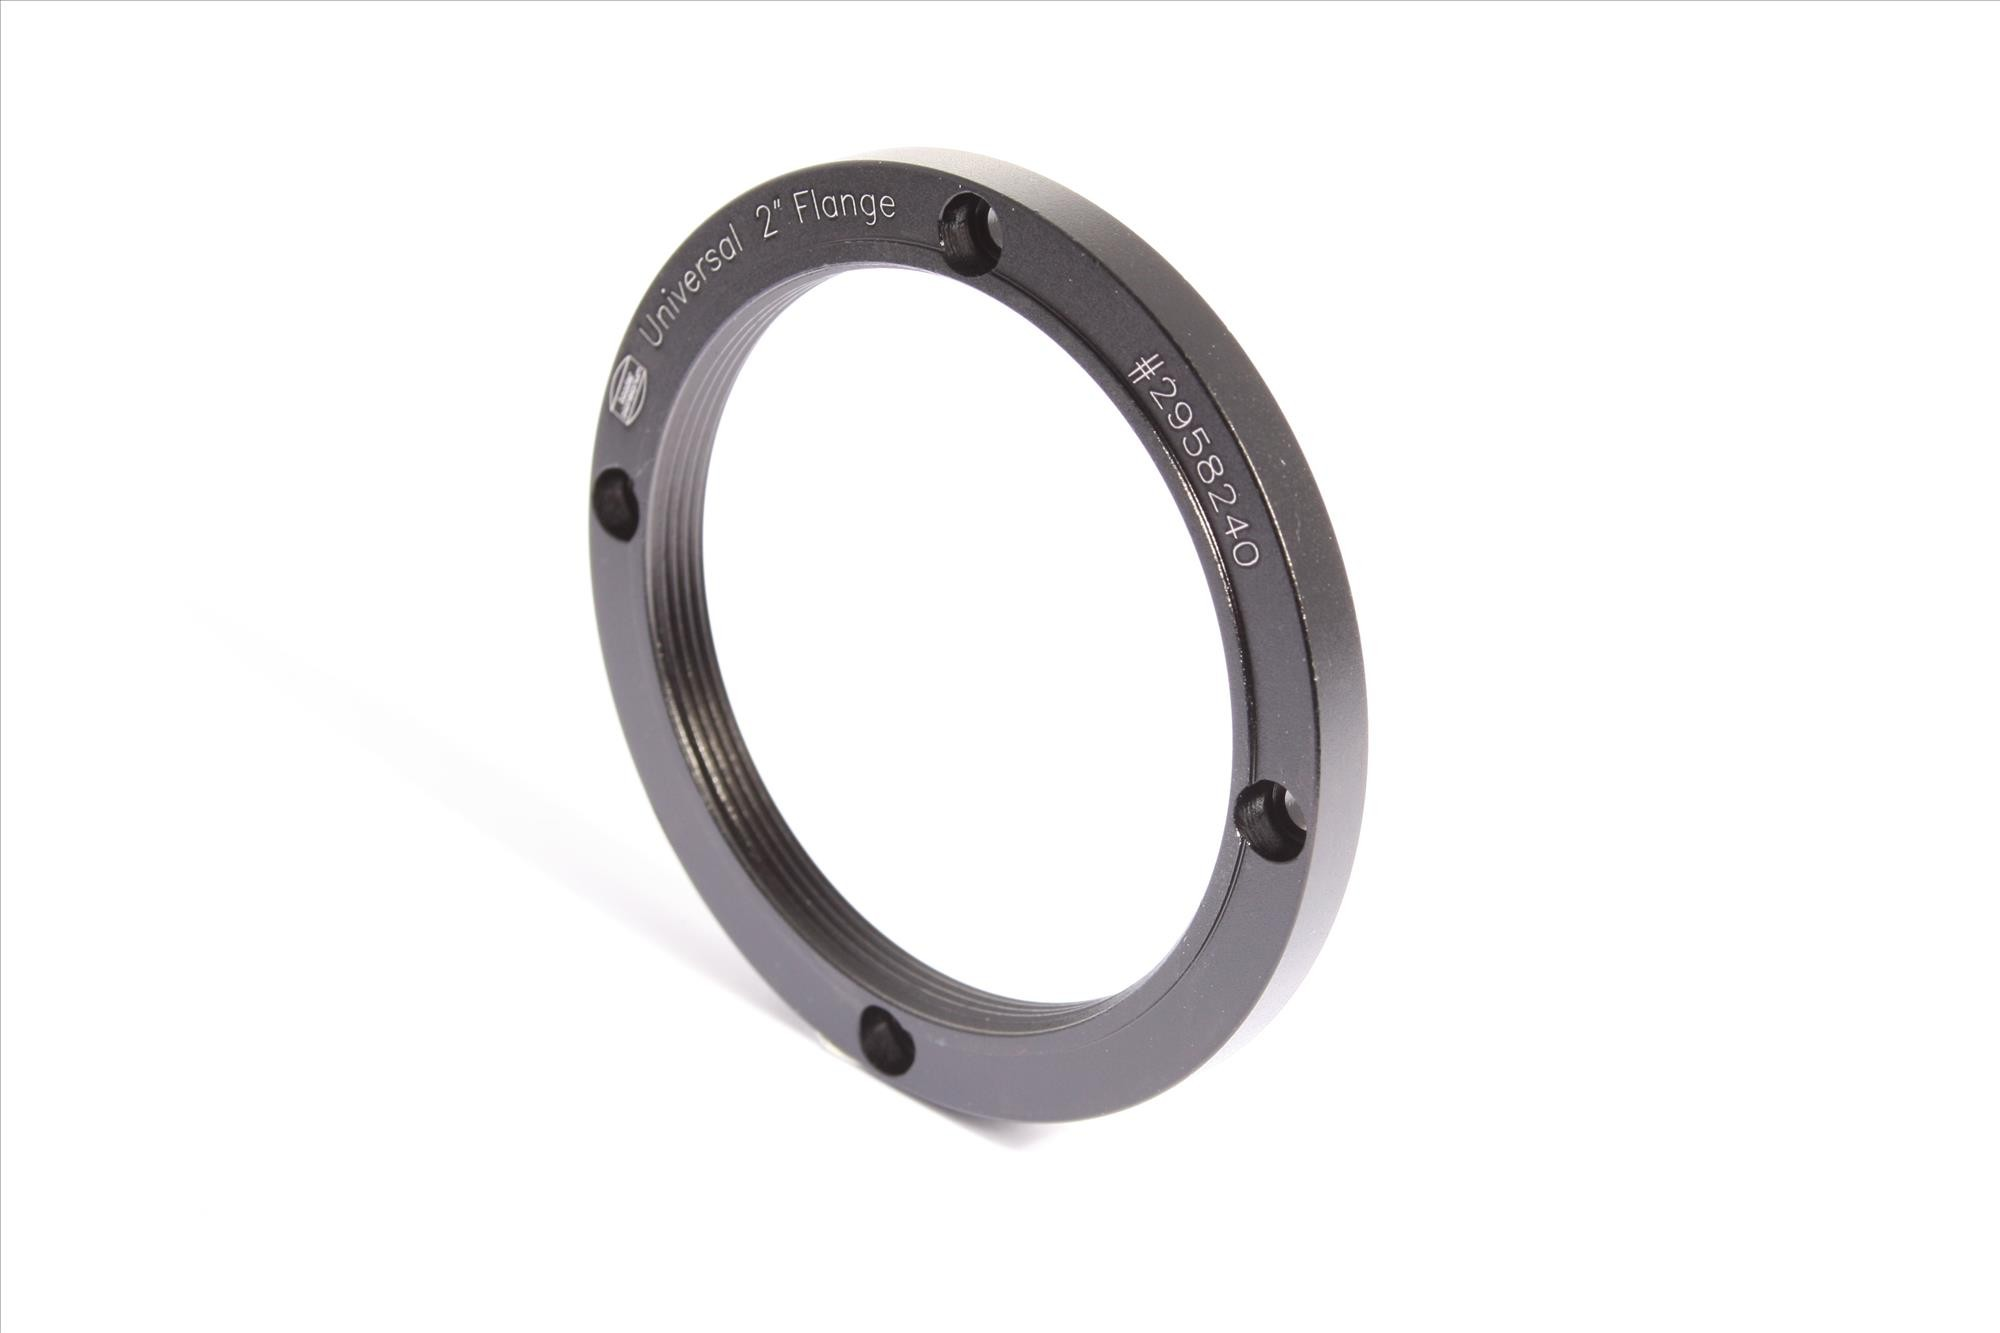 "2"" Universal flange - suitable for Solar Spectrum Filter"